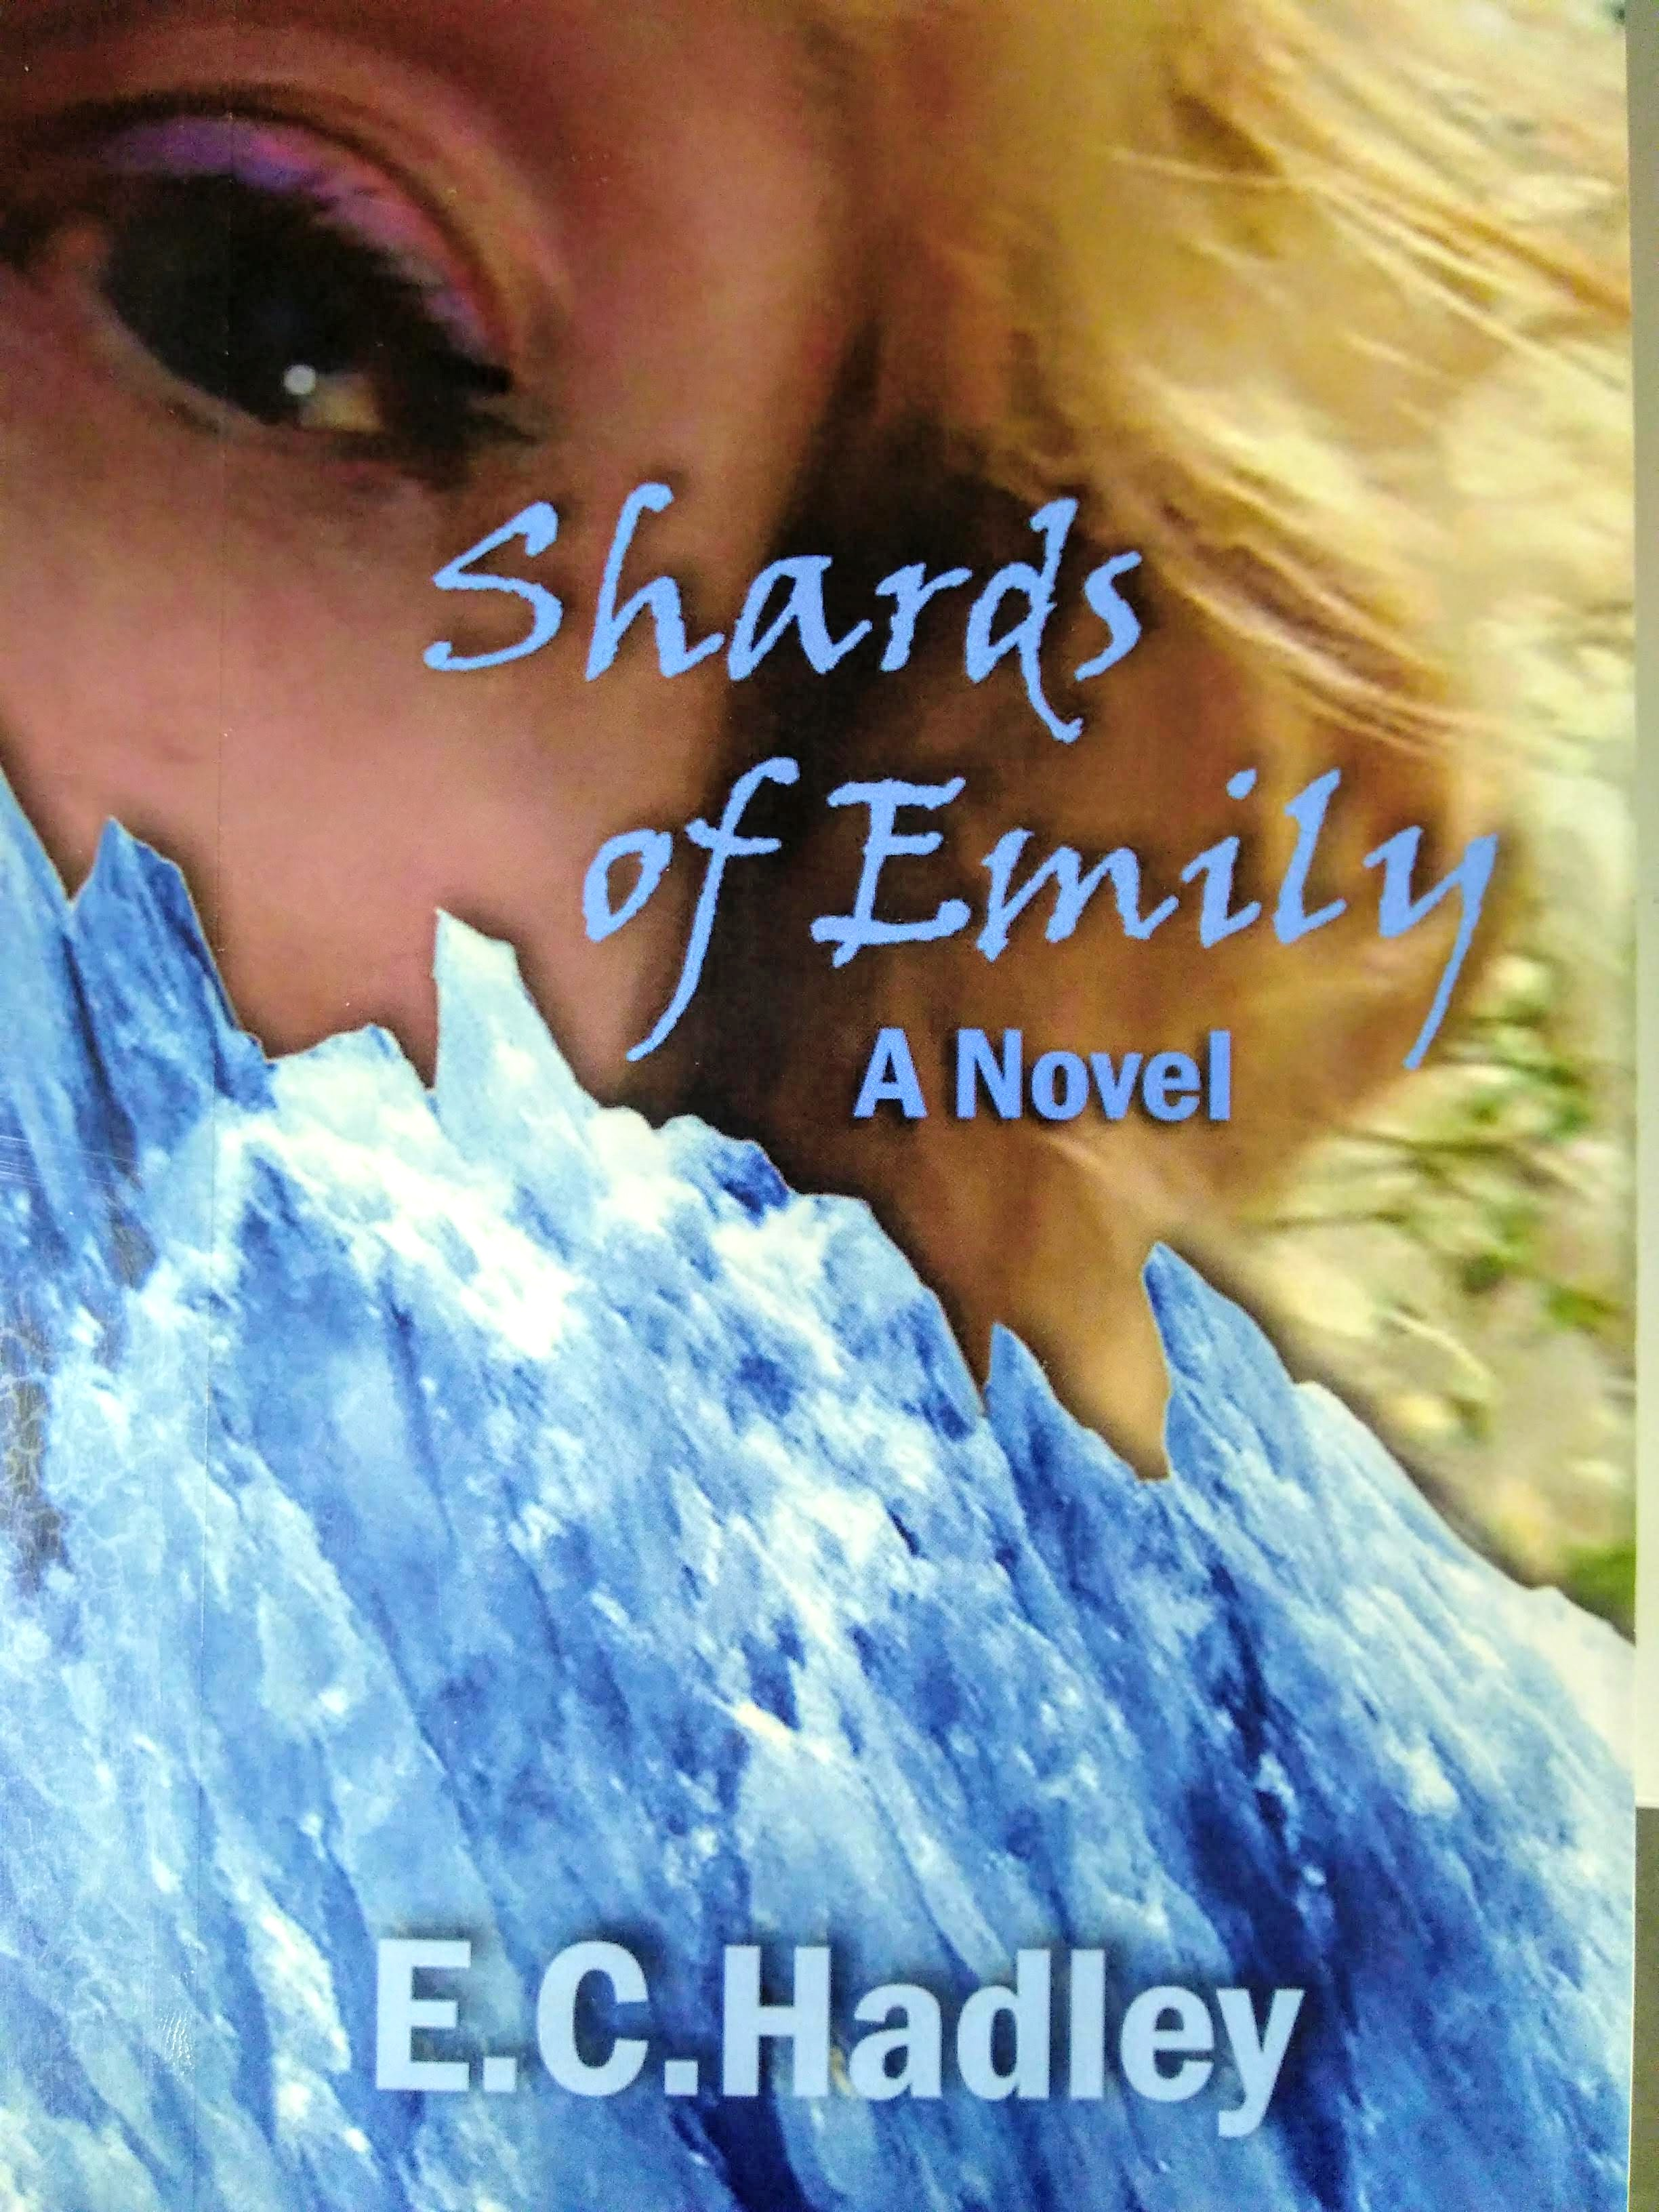 Shards of Emily a Novel based on a true story @ Powell River Public Library